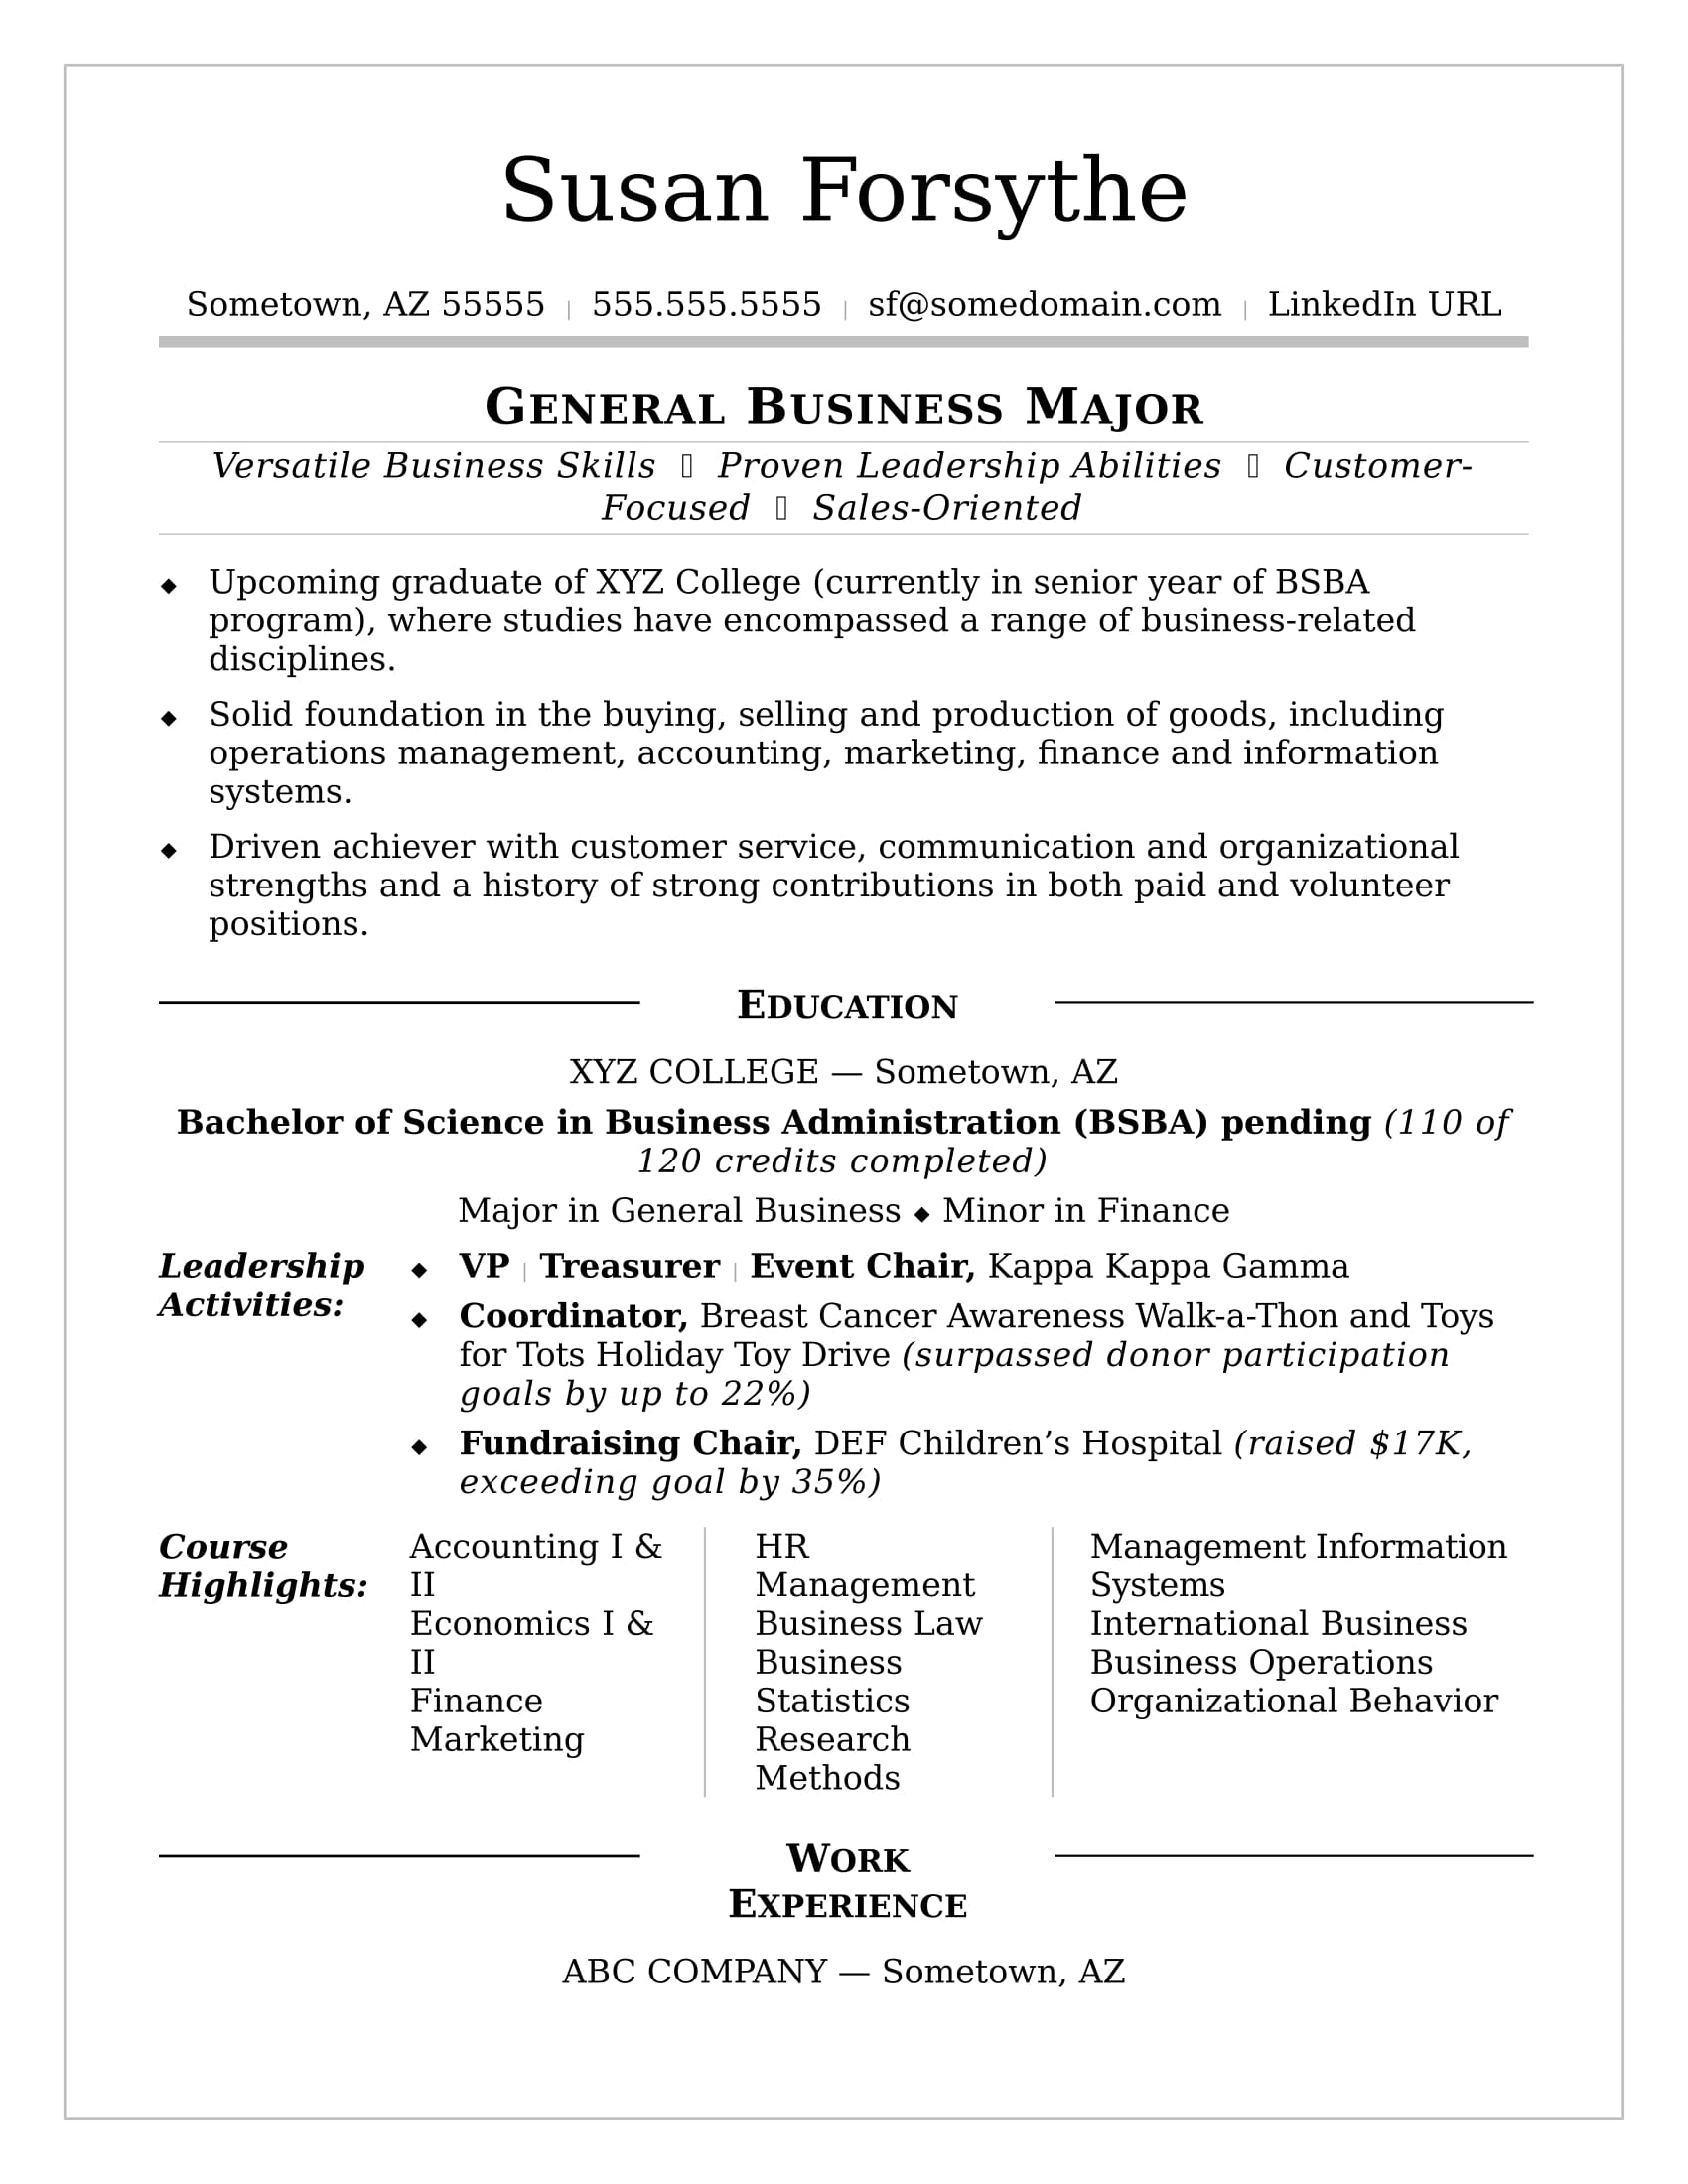 College Resume Sample  Monsterm. Graphic Design Resume Examples. What Is A Good Resume Name. Where Can I Print My Resume. Resume For Process Operator. Resume Format For System Engineer. Resume For 3 Years Experience In Java. Youtube Resume. Account Executive Resume